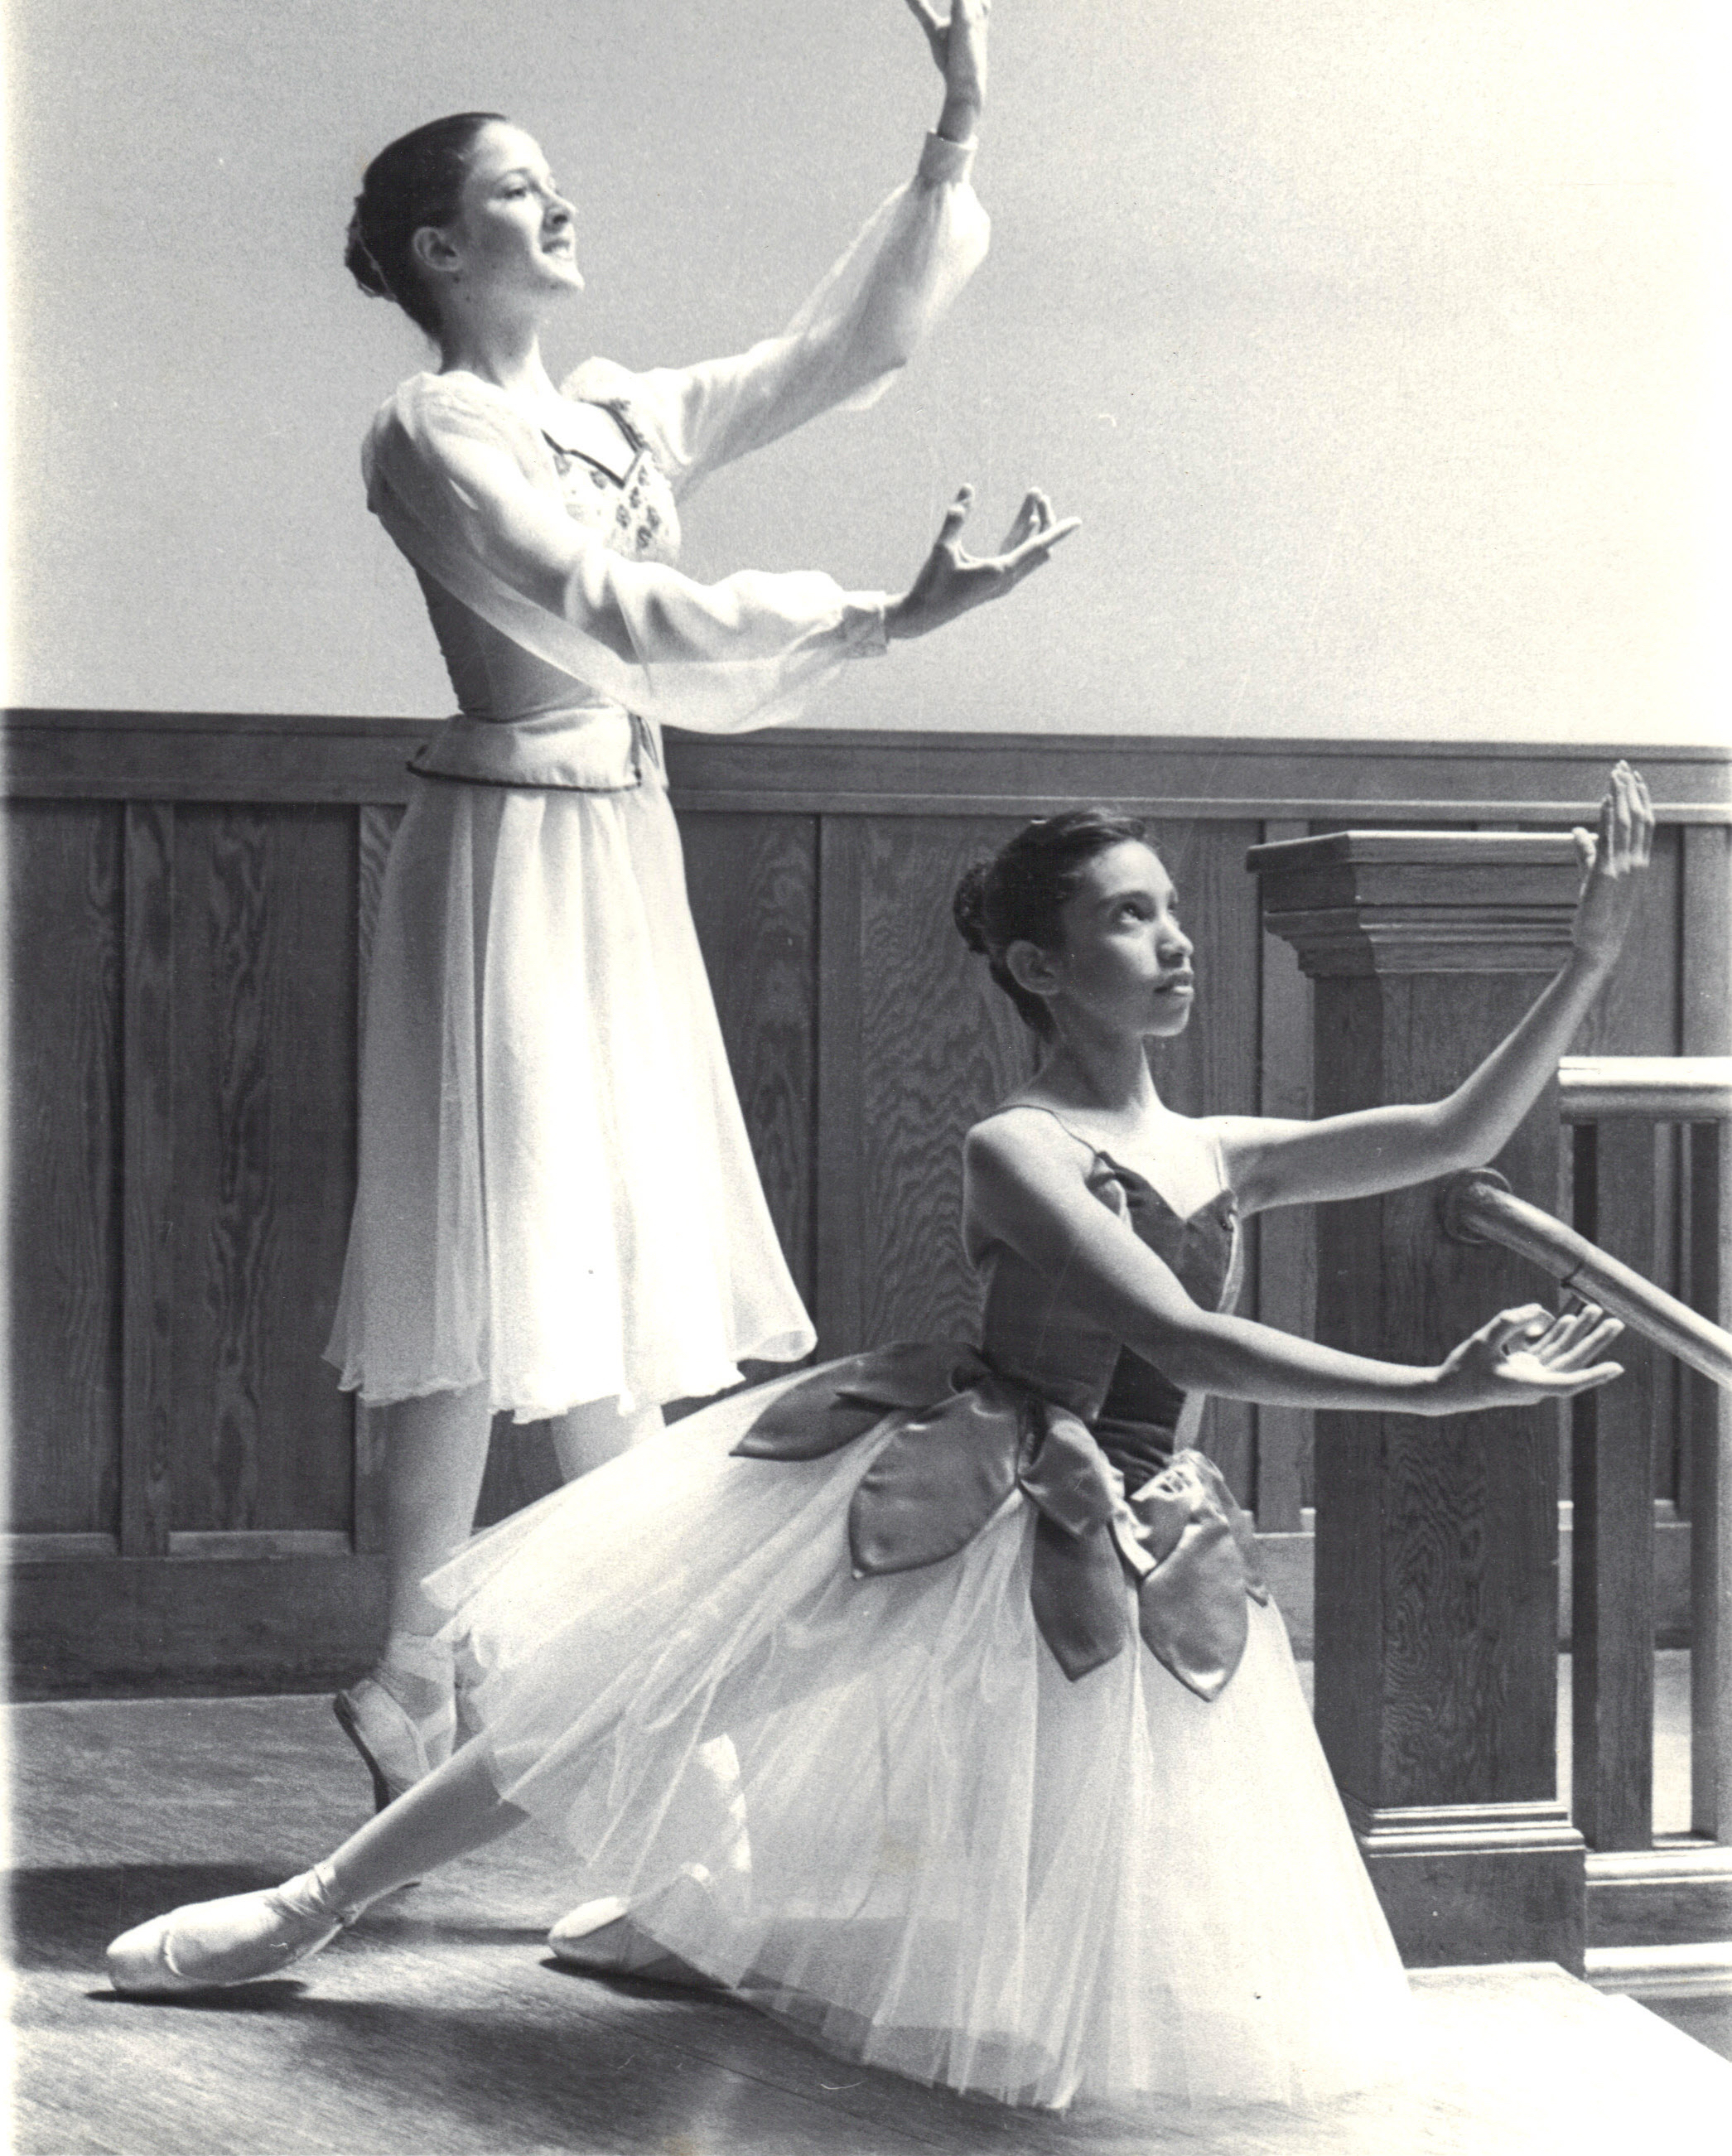 Zoura o'neill, Left, and lucia mclaughlin, 1979 or 1980